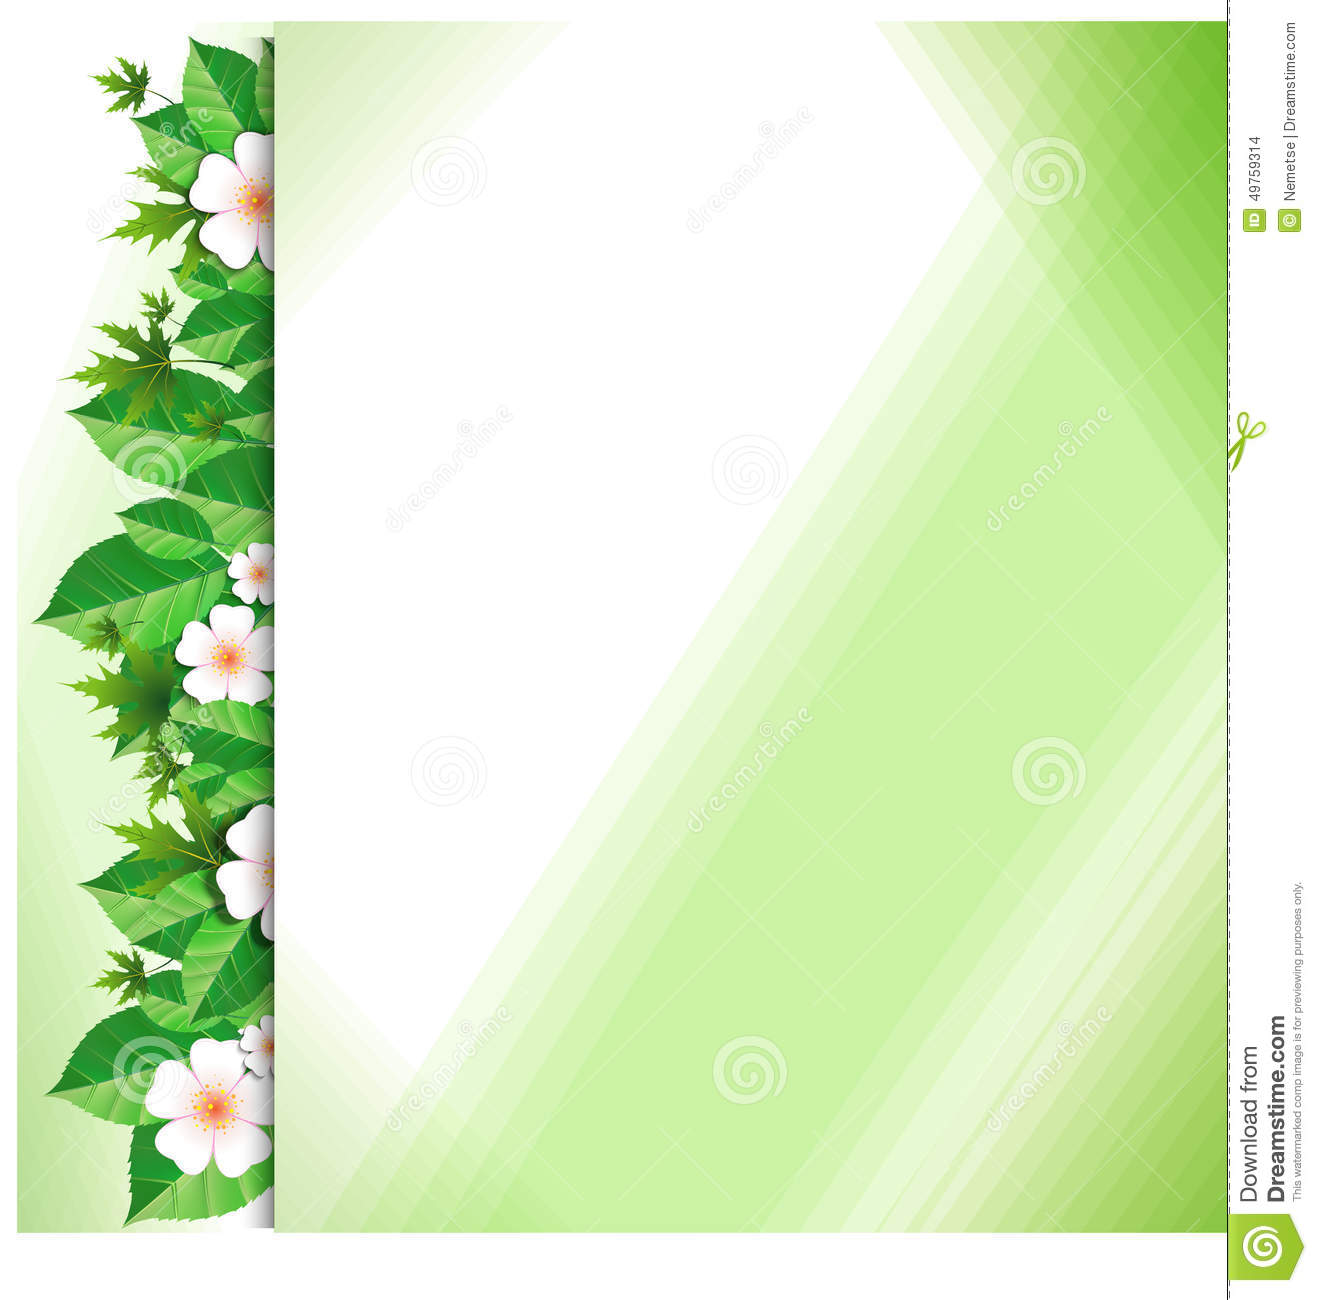 background with green leaves and flowers stock vector